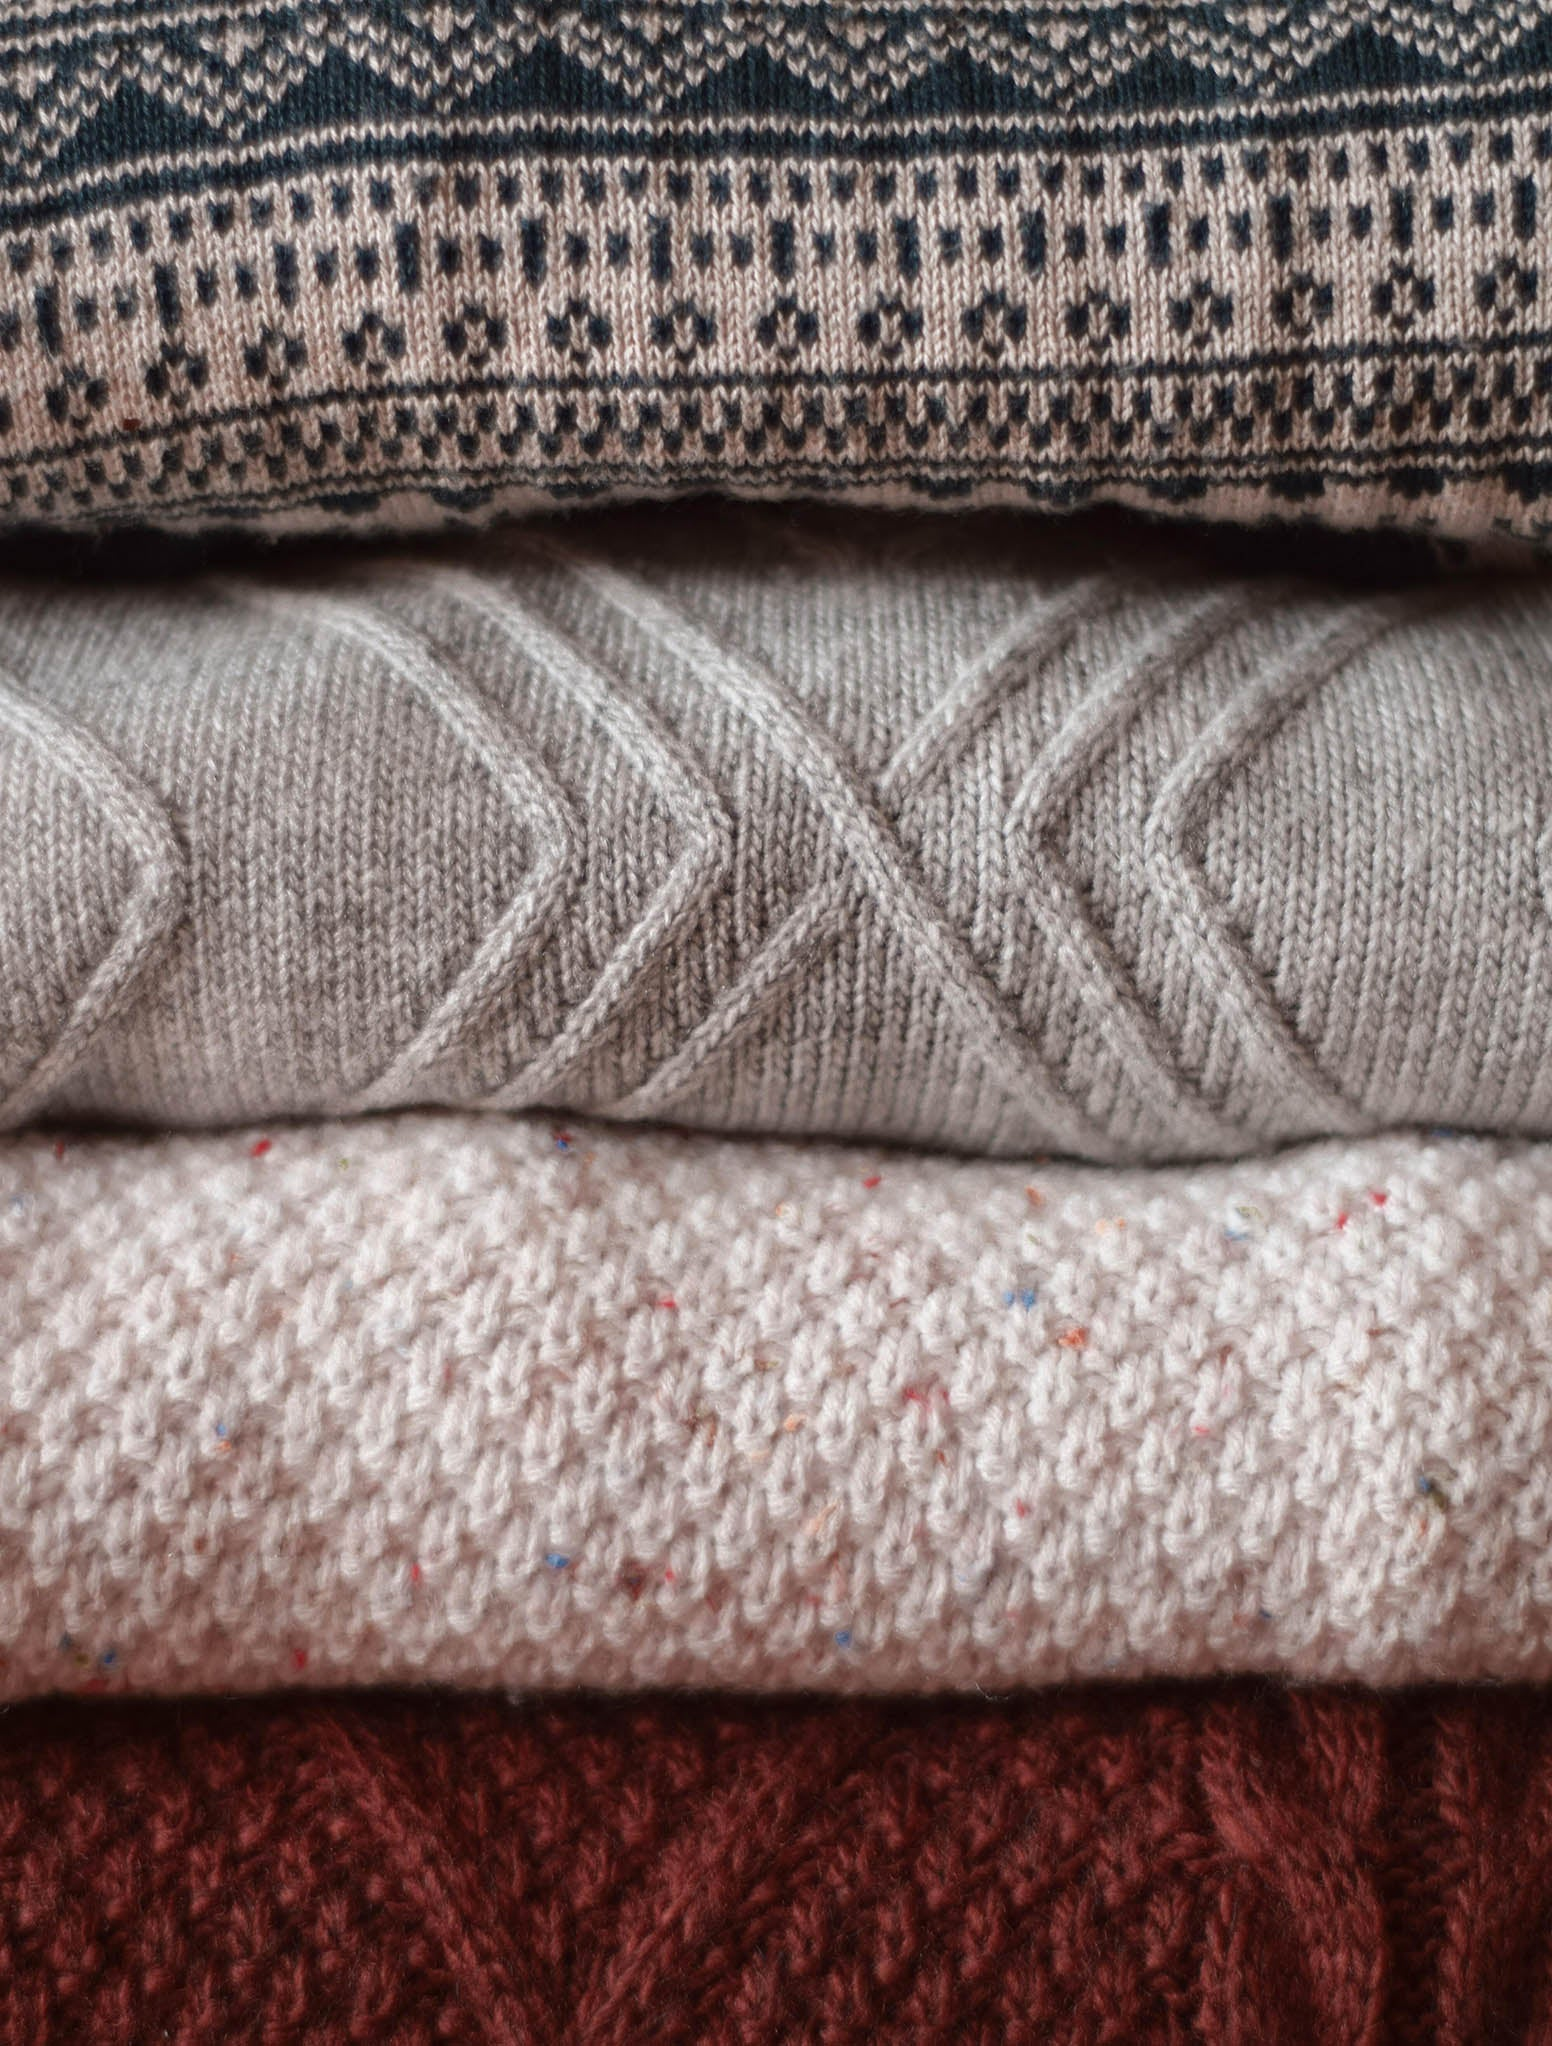 Folded stack of knit sweaters